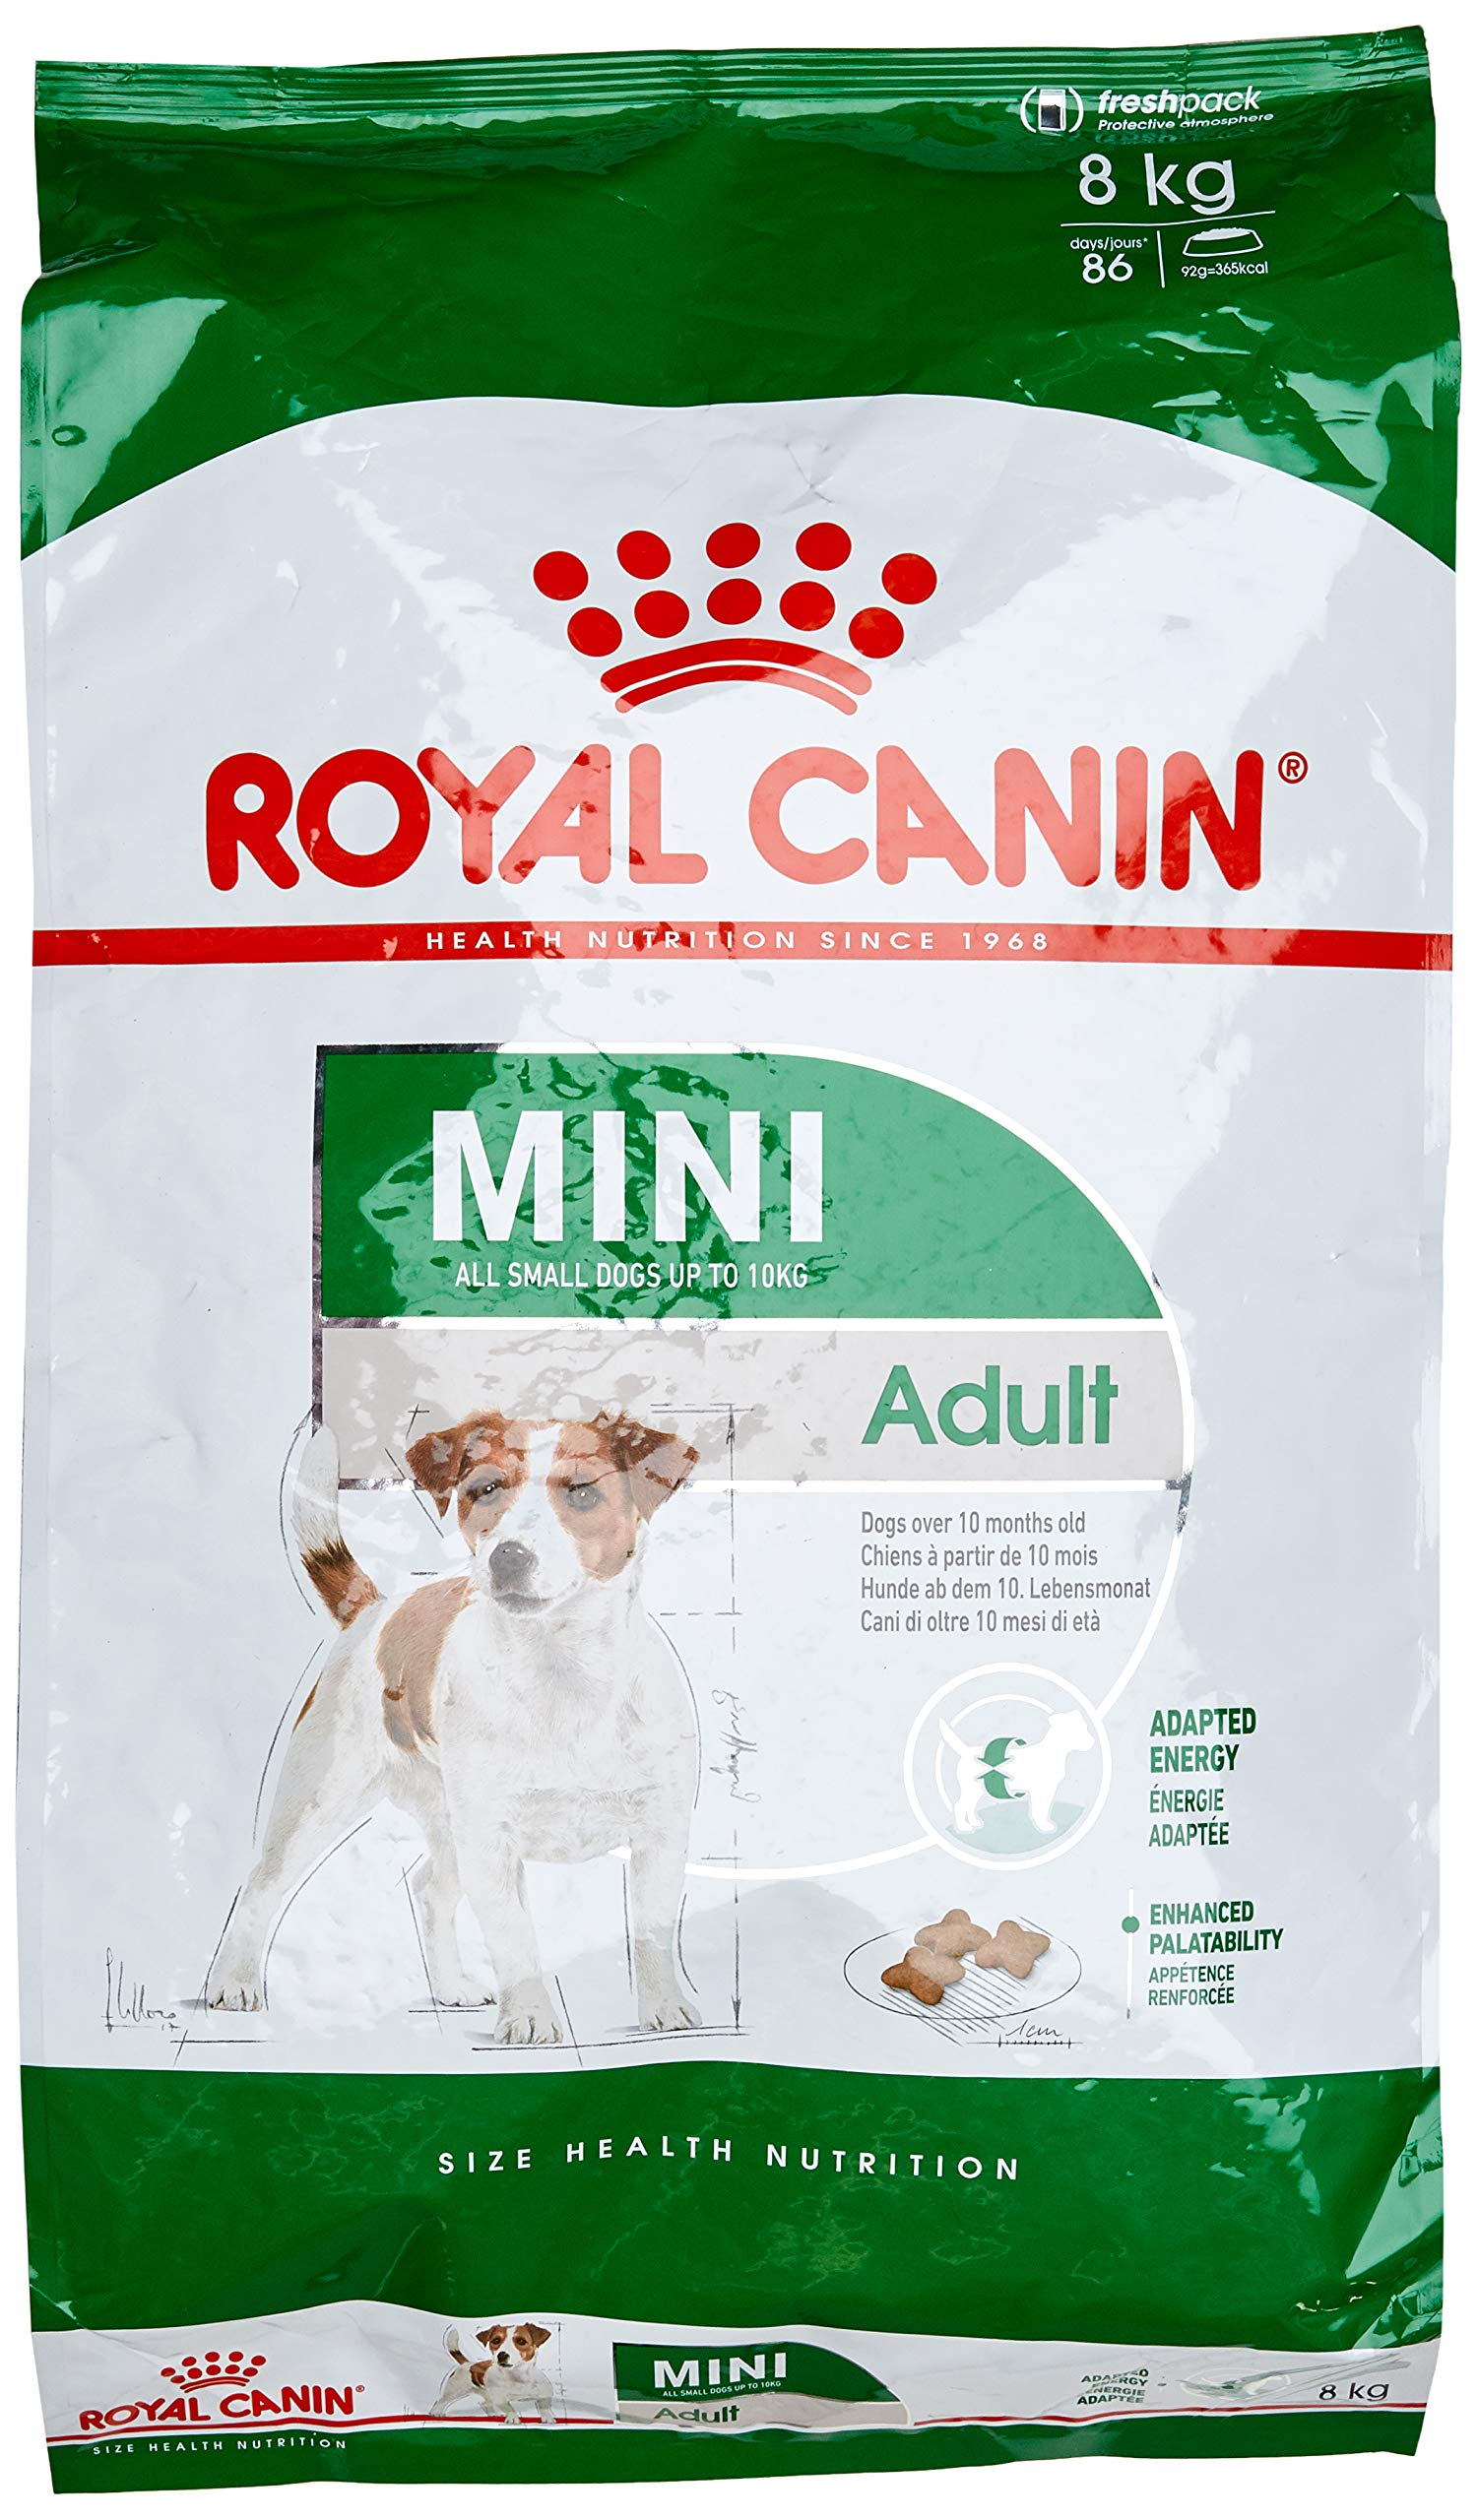 Royal Canin C-08341 S.N. Mini Adult - 8 Kg product image